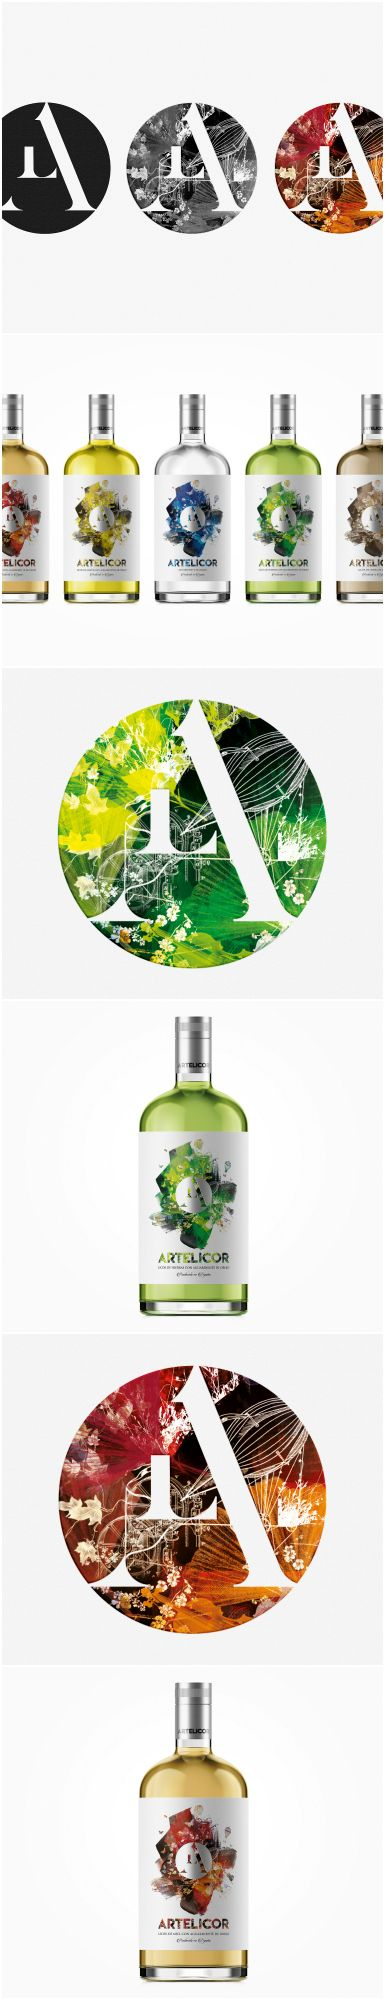 Creativity And Design For The Range Of Liquors Artelicor